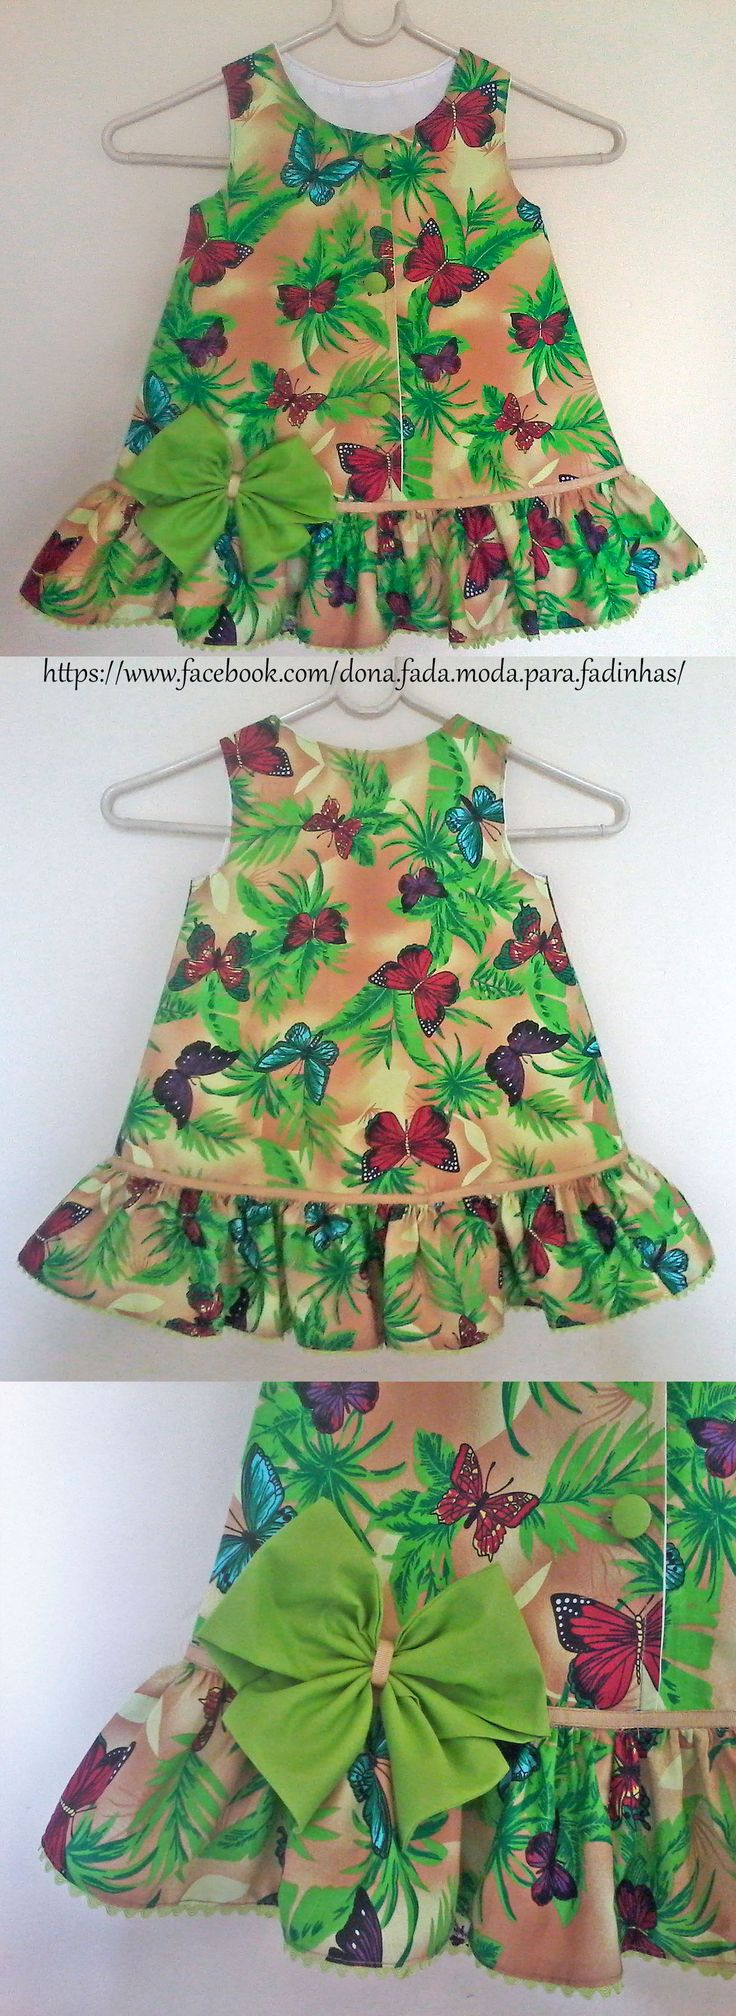 Vestido Trapézio Floresta Tropical - 2 anos - - Rain Forest  Dress - 2 years - - - - baby - infant - toddler - kids - clothes for girls - - - https://www.facebook.com/dona.fada.moda.para.fadinhas/